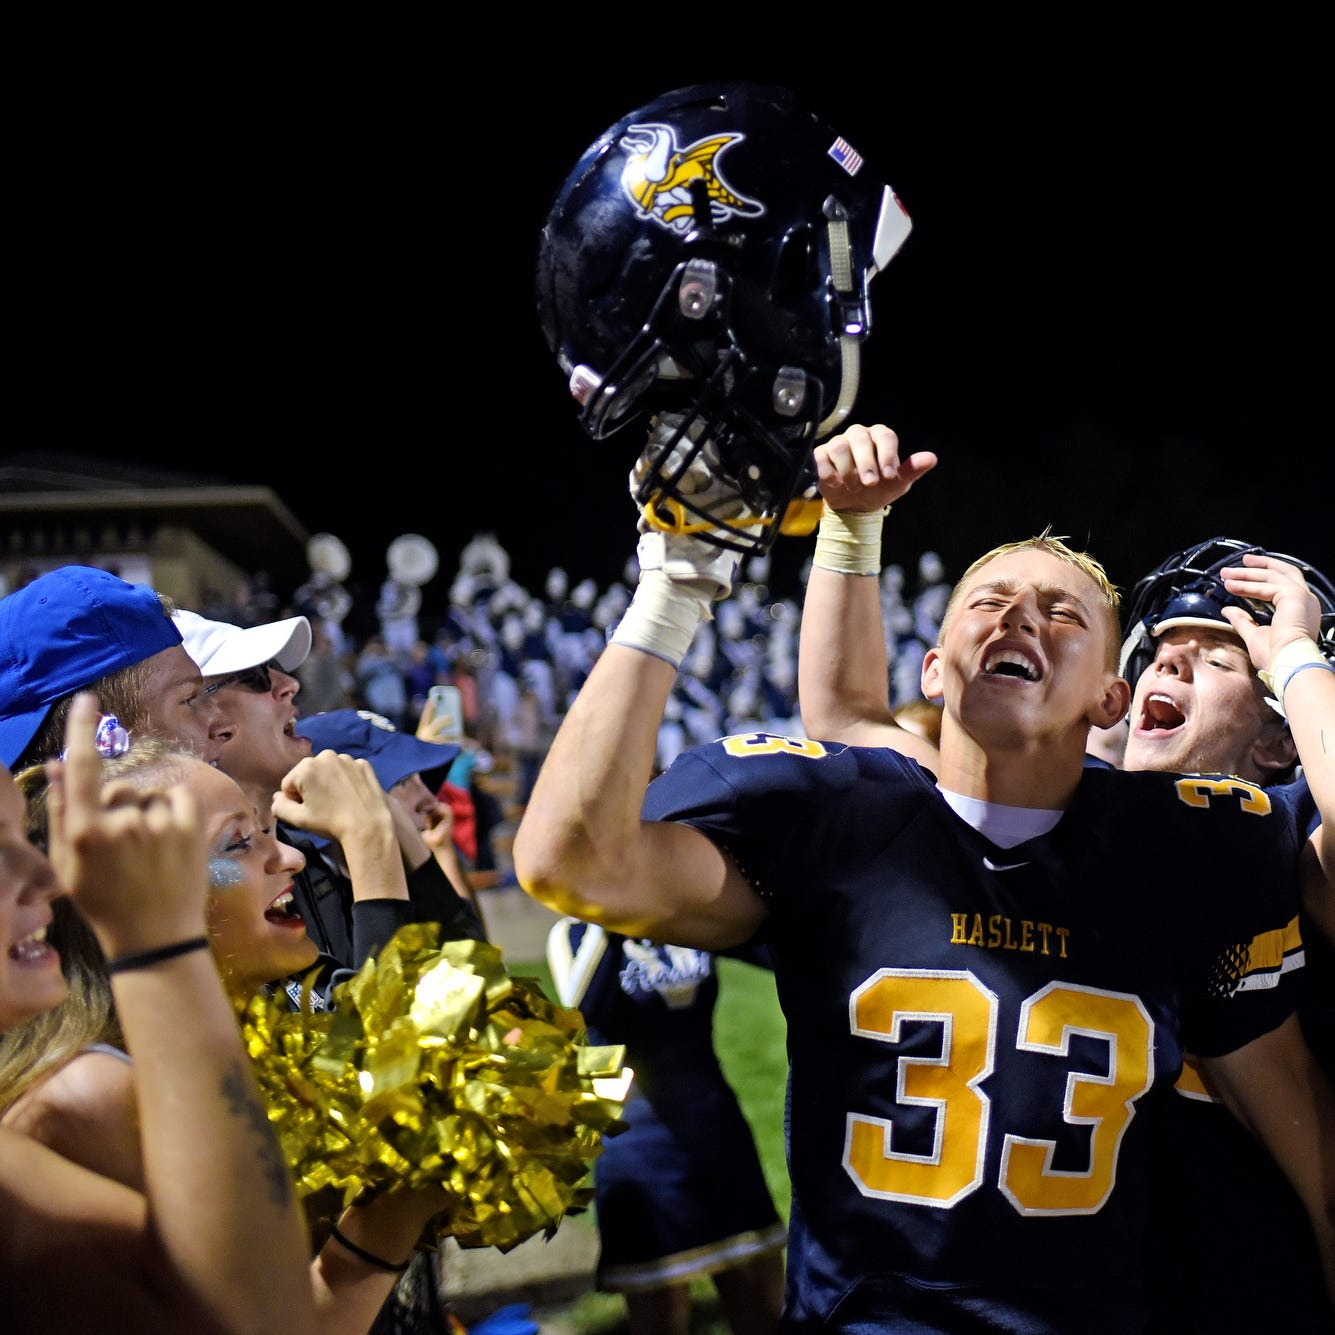 State prep football poll: Haslett, Lansing Catholic, Olivet, Ithaca rise in rankings